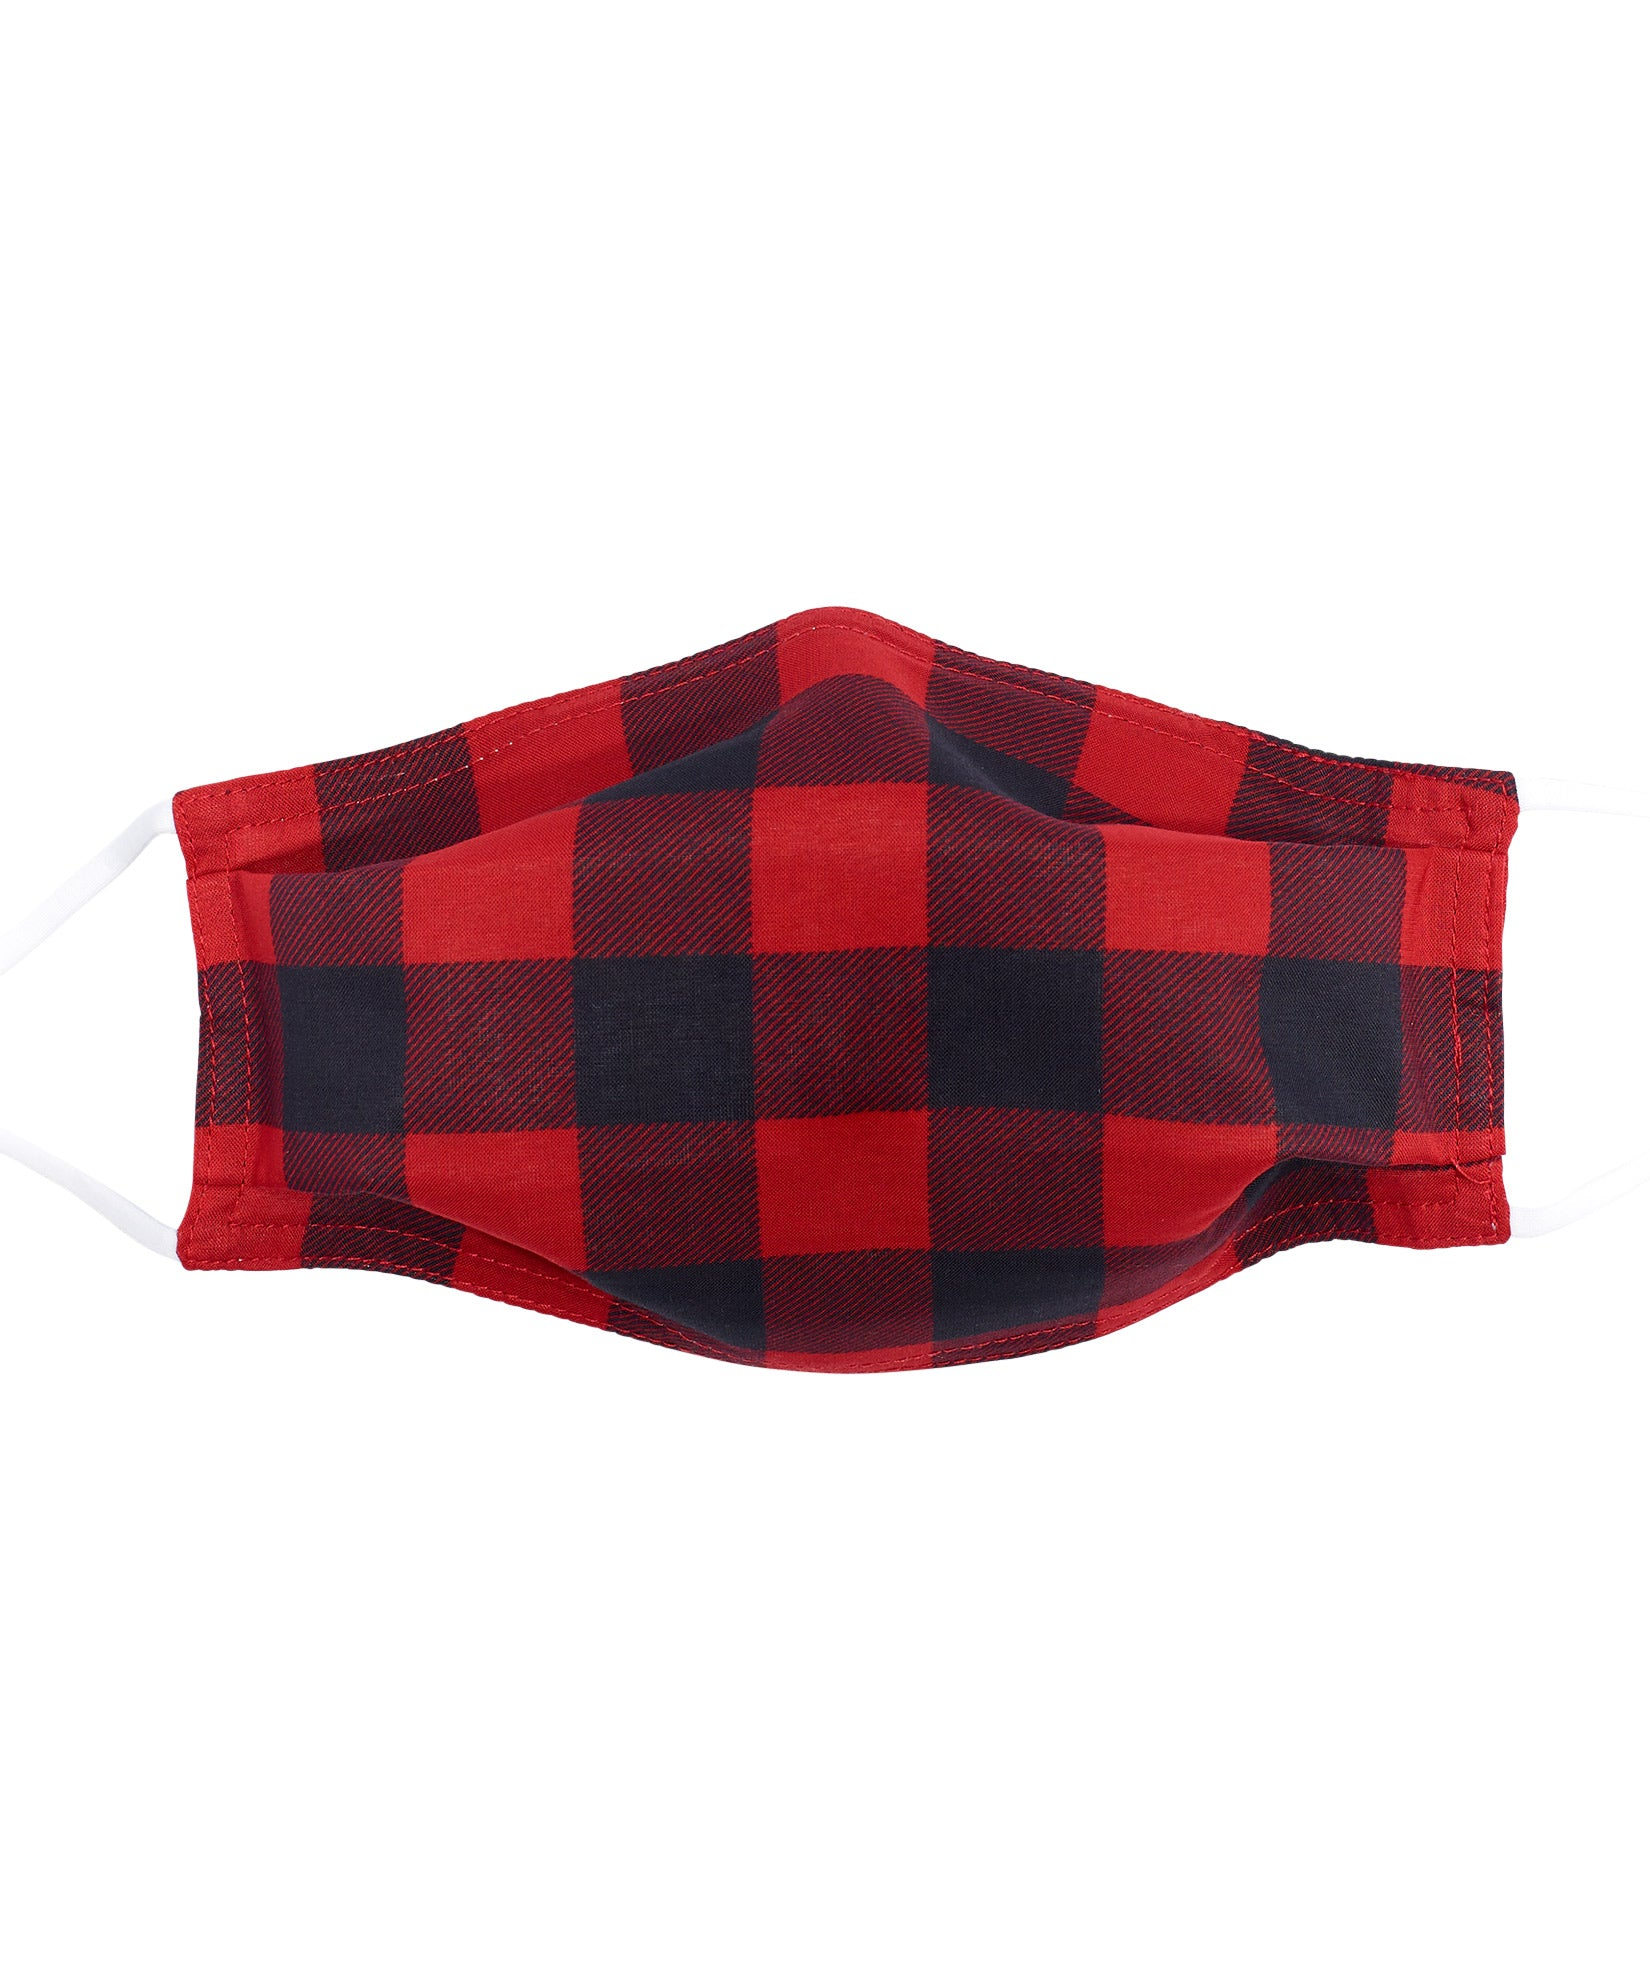 Red/Black - Buffalo Check Cooling Mask w/Pocket